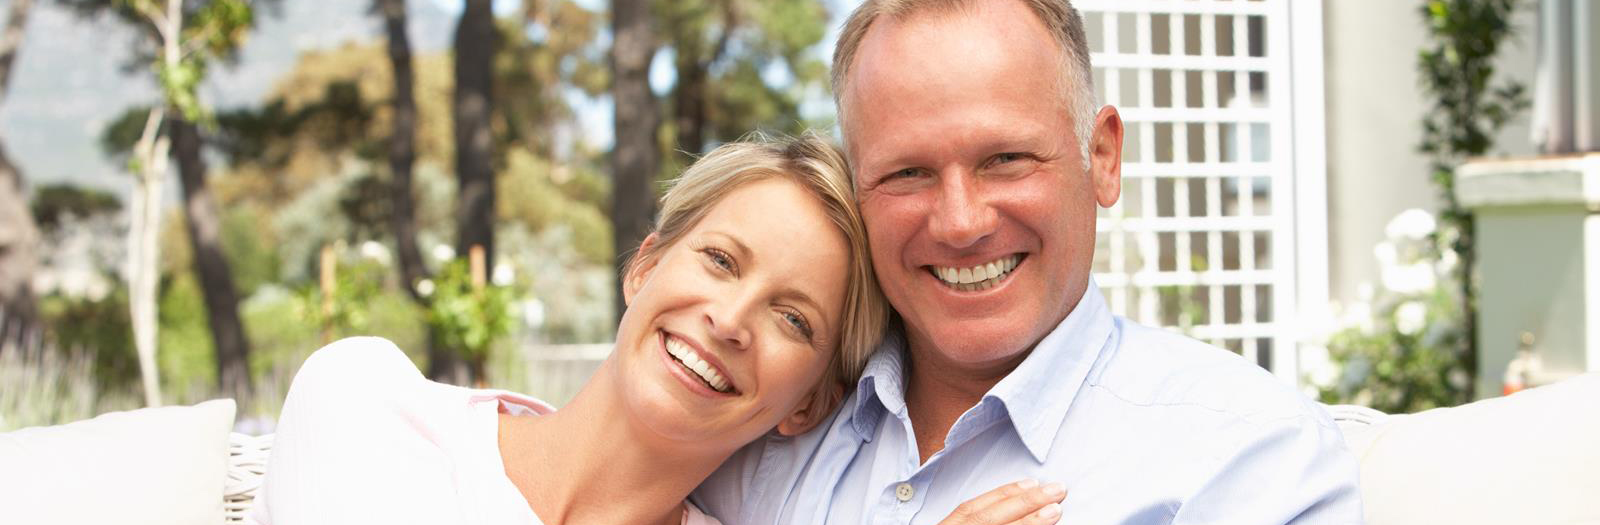 dental implant treatments